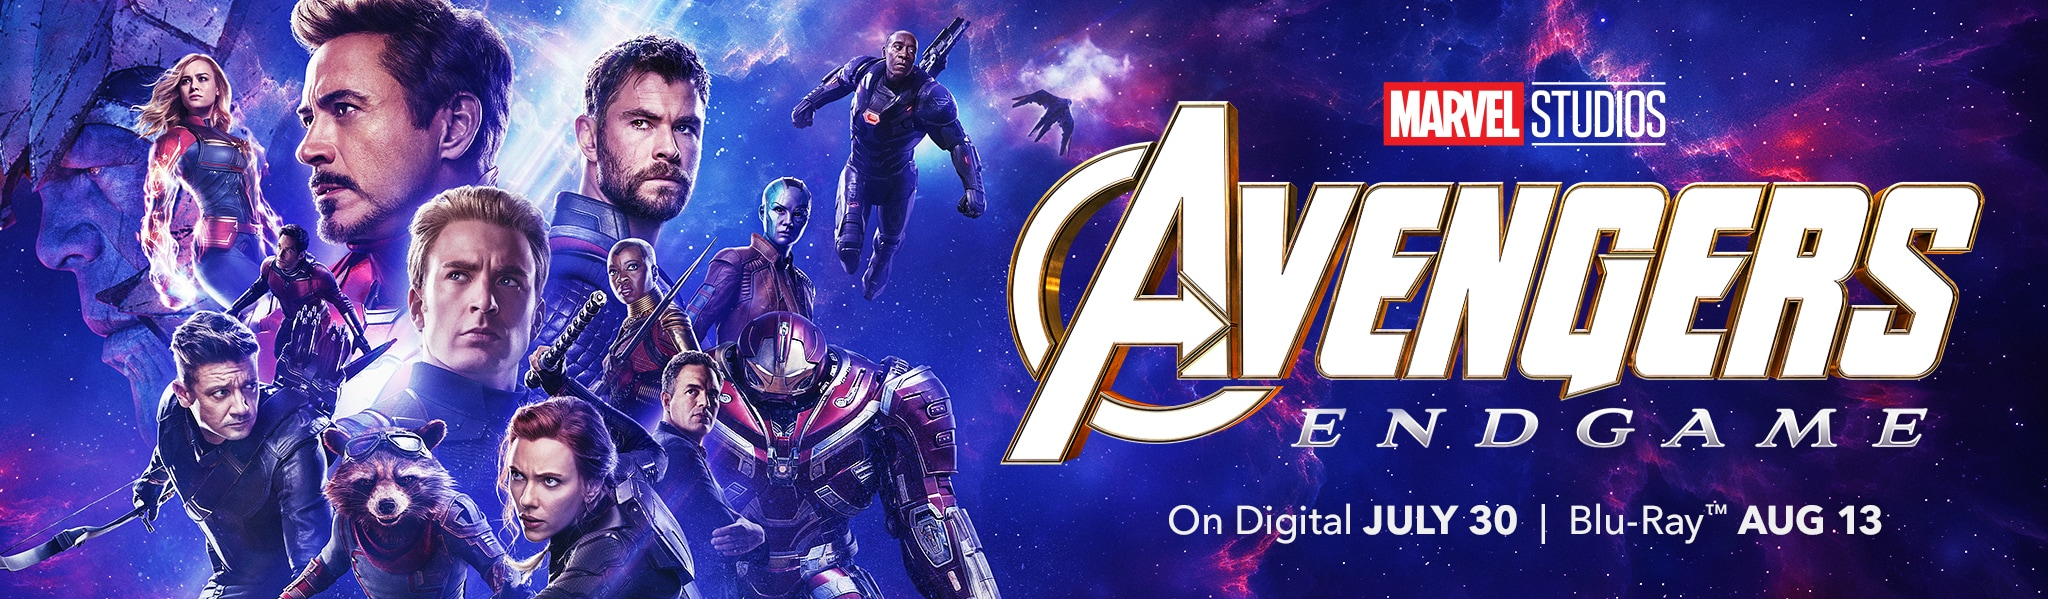 Marvel Studios - Avengers Endgame - On Digital July 30 - Blu-ray Aug 13